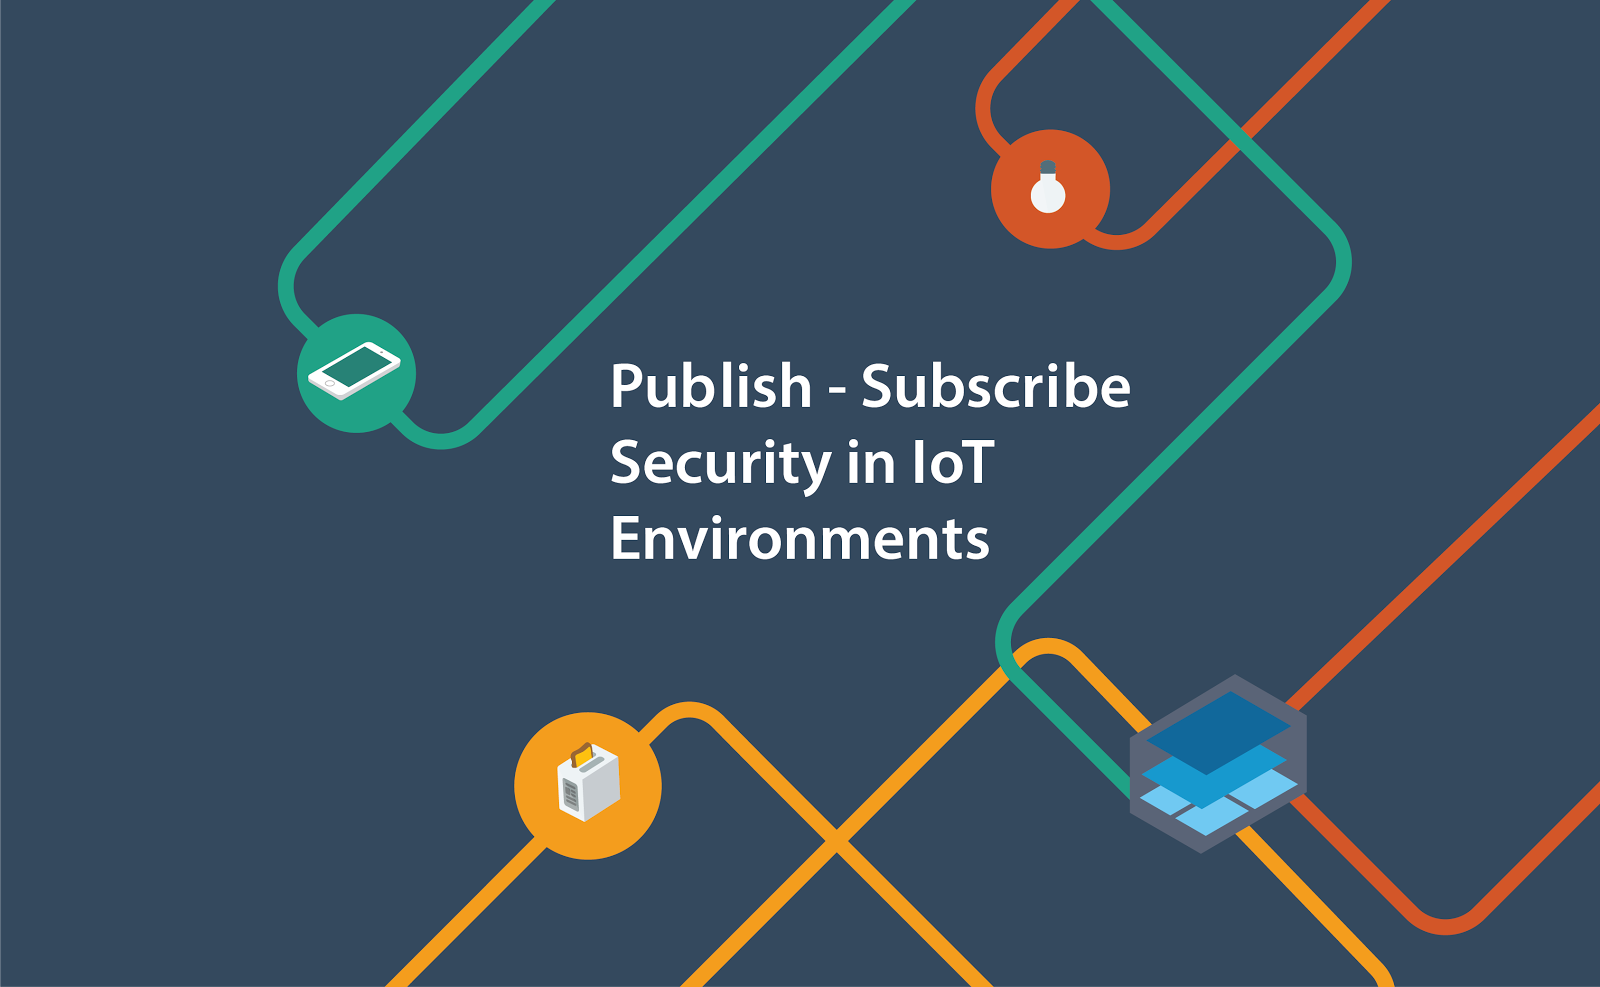 Publish-Subscribe Security in IoT Environments - Security Compass